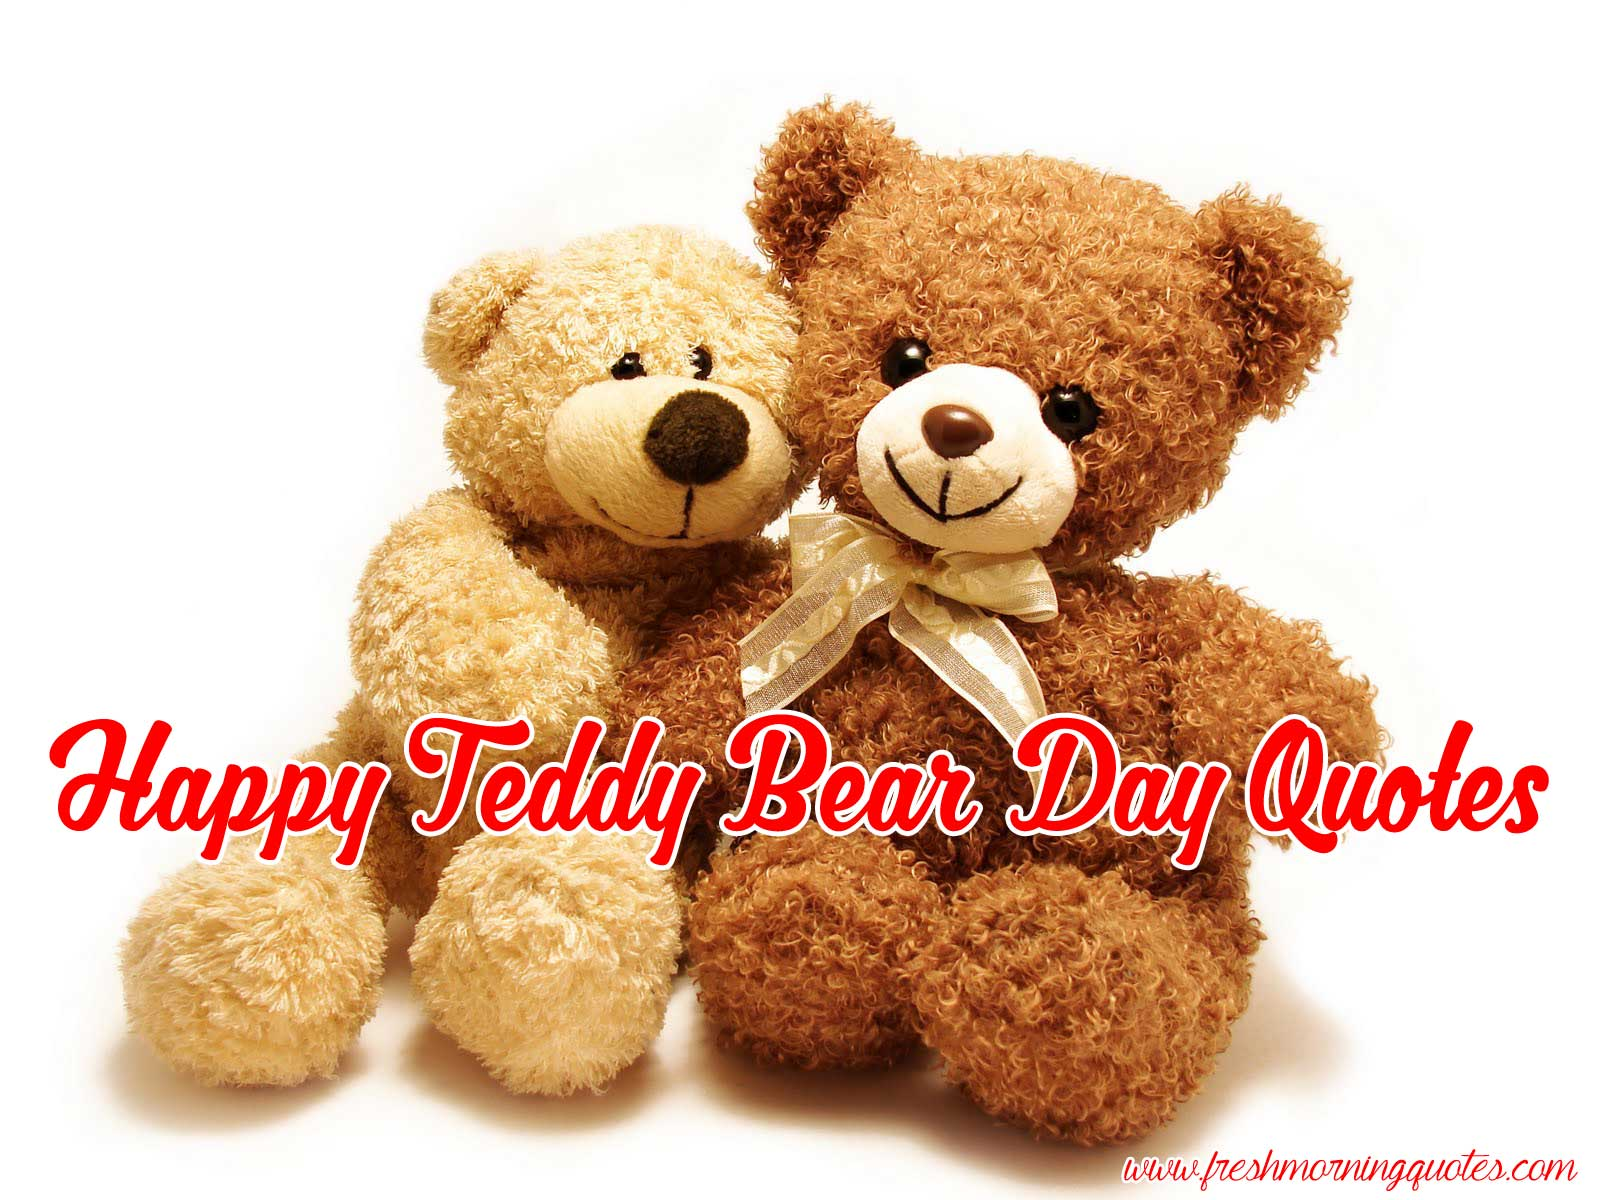 Teddy Bear Day 2018 Quotes Sayings And Images